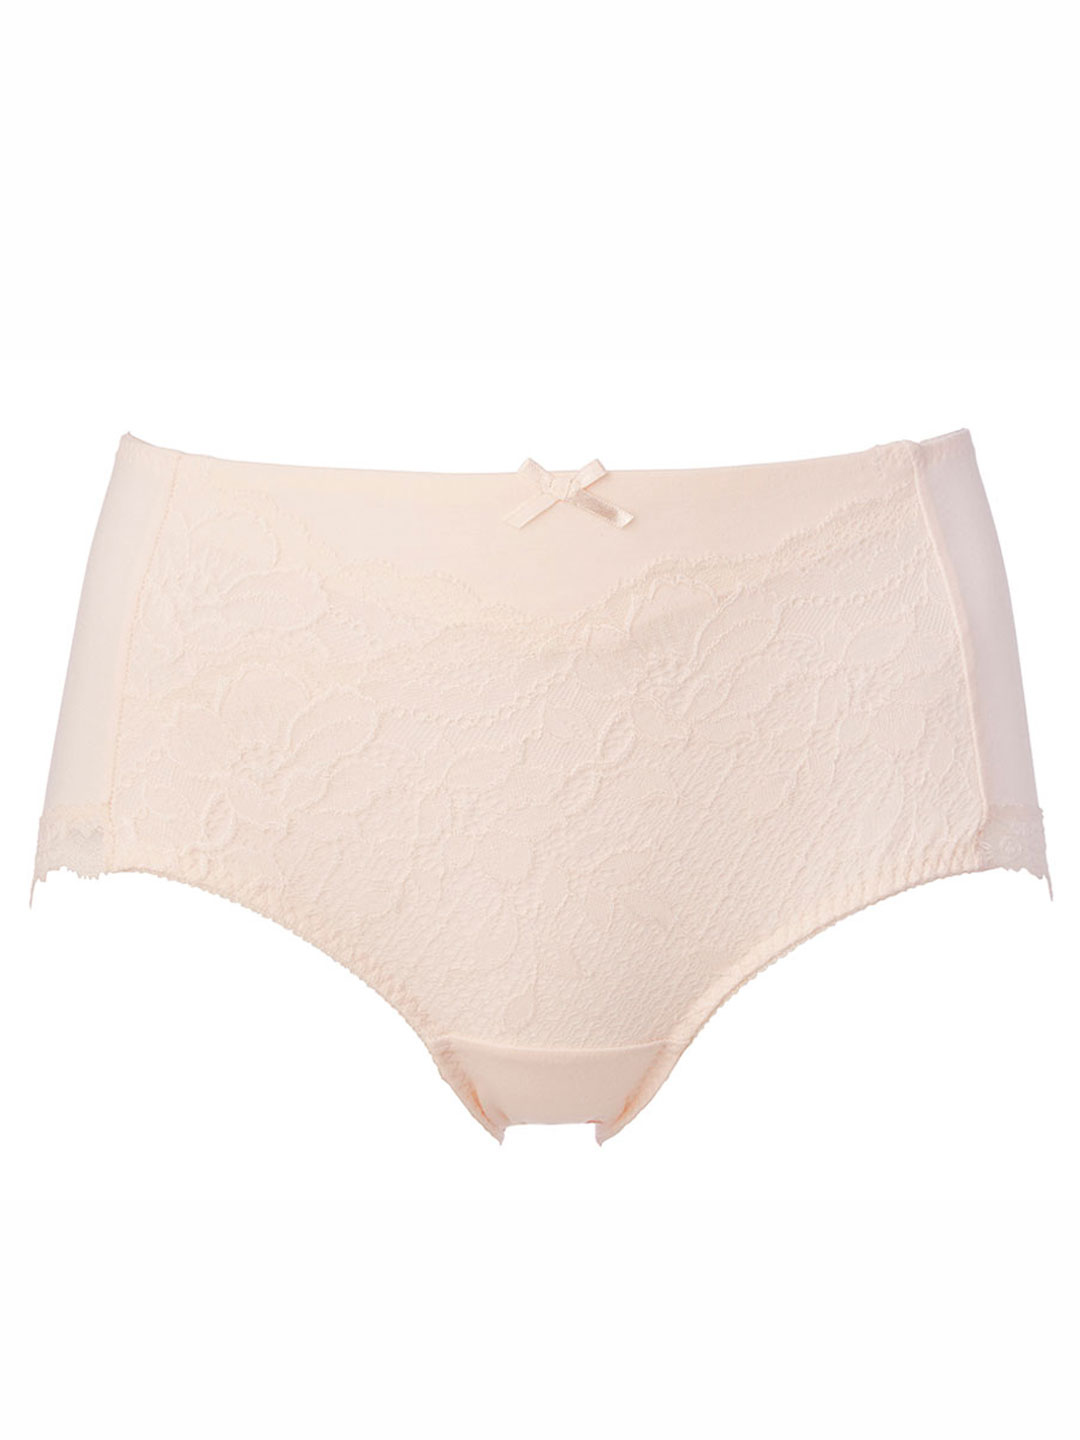 Lace Panty IS3214